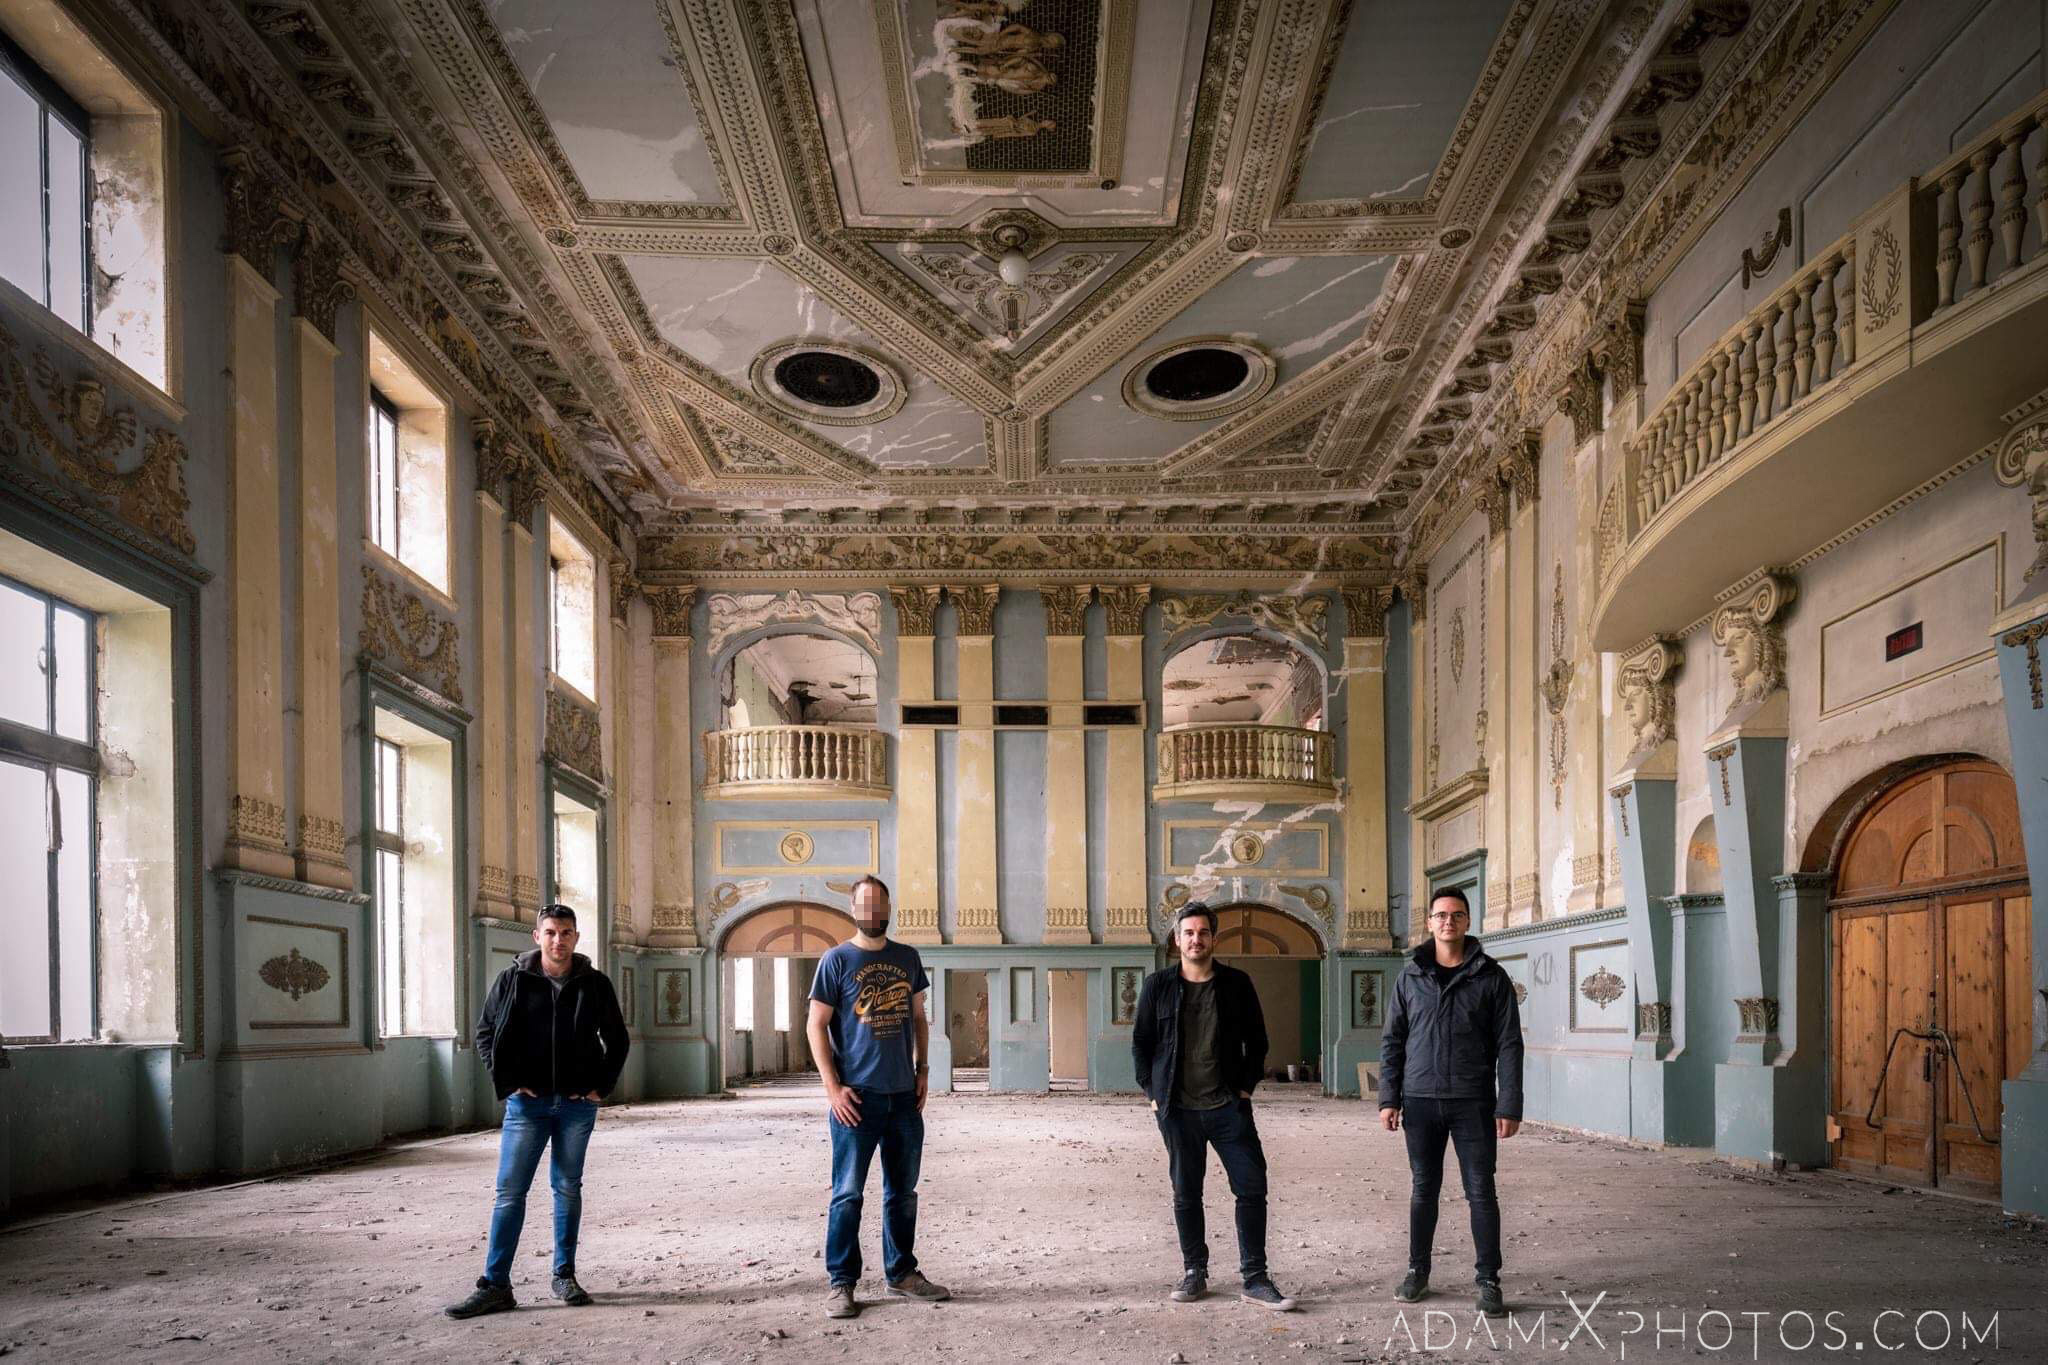 Team Shot Theatre Theater Entertainment Hall Tbilisi Georgia Soviet era Adam X AdamXPhotos Urbex Urban Exploration 2018 2019 Abandoned Access History decay ruins lost forgotten derelict location creepy haunting eerie security